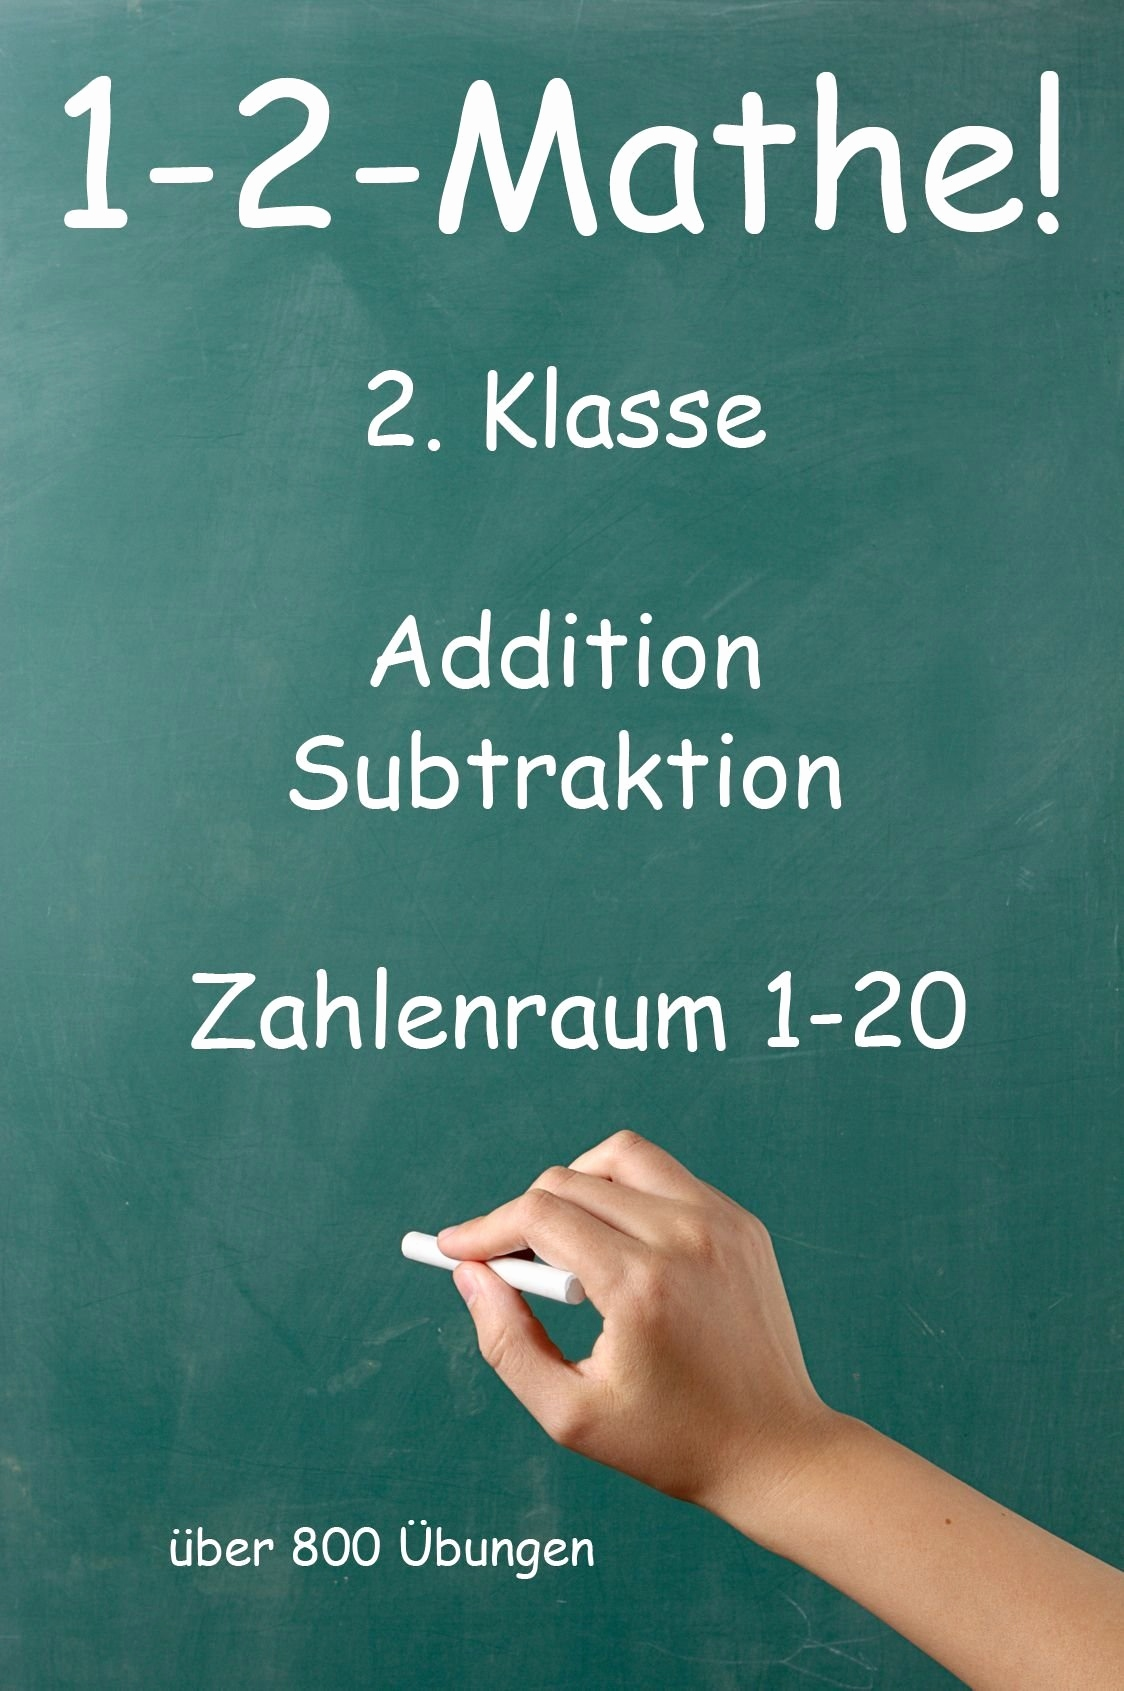 Matheaufgaben Klasse 2 Luxus 1 2 Mathe 2 Klasse Addition Subtraktion Zahlenraum Bis 20